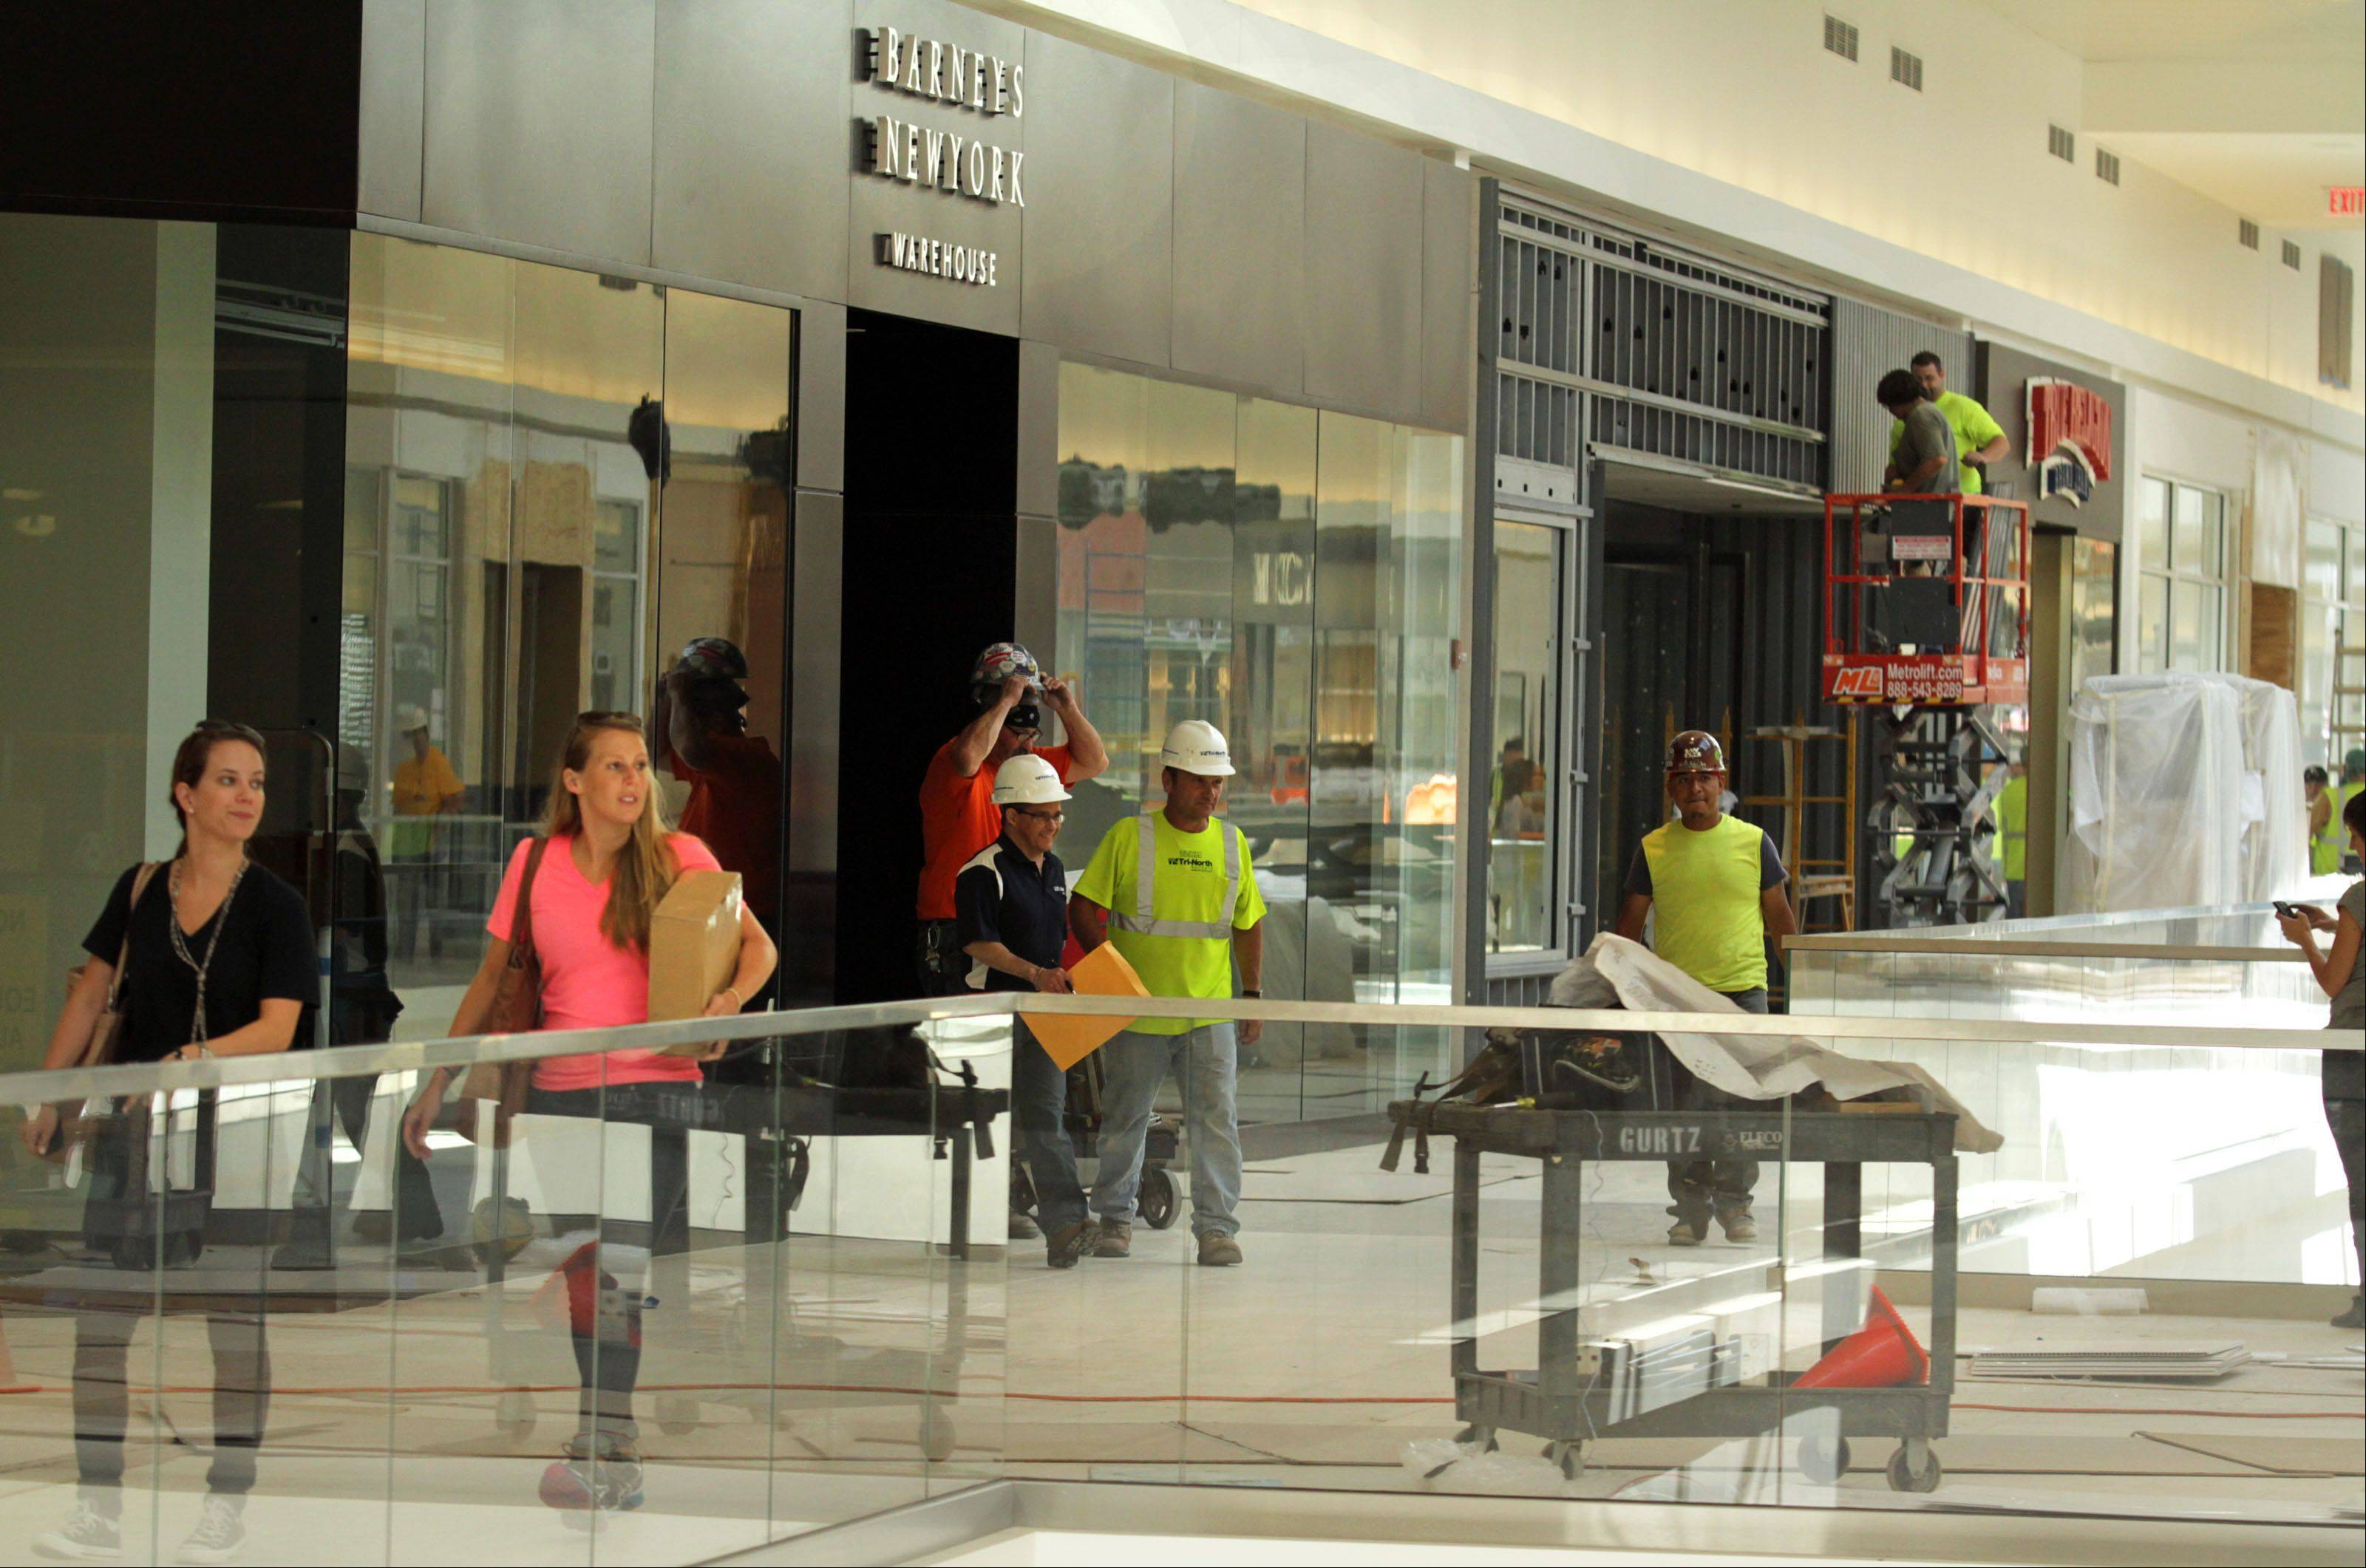 Workers at Fashion Outlets of Chicago in Rosemont on Wednesday, July 24, 2013.